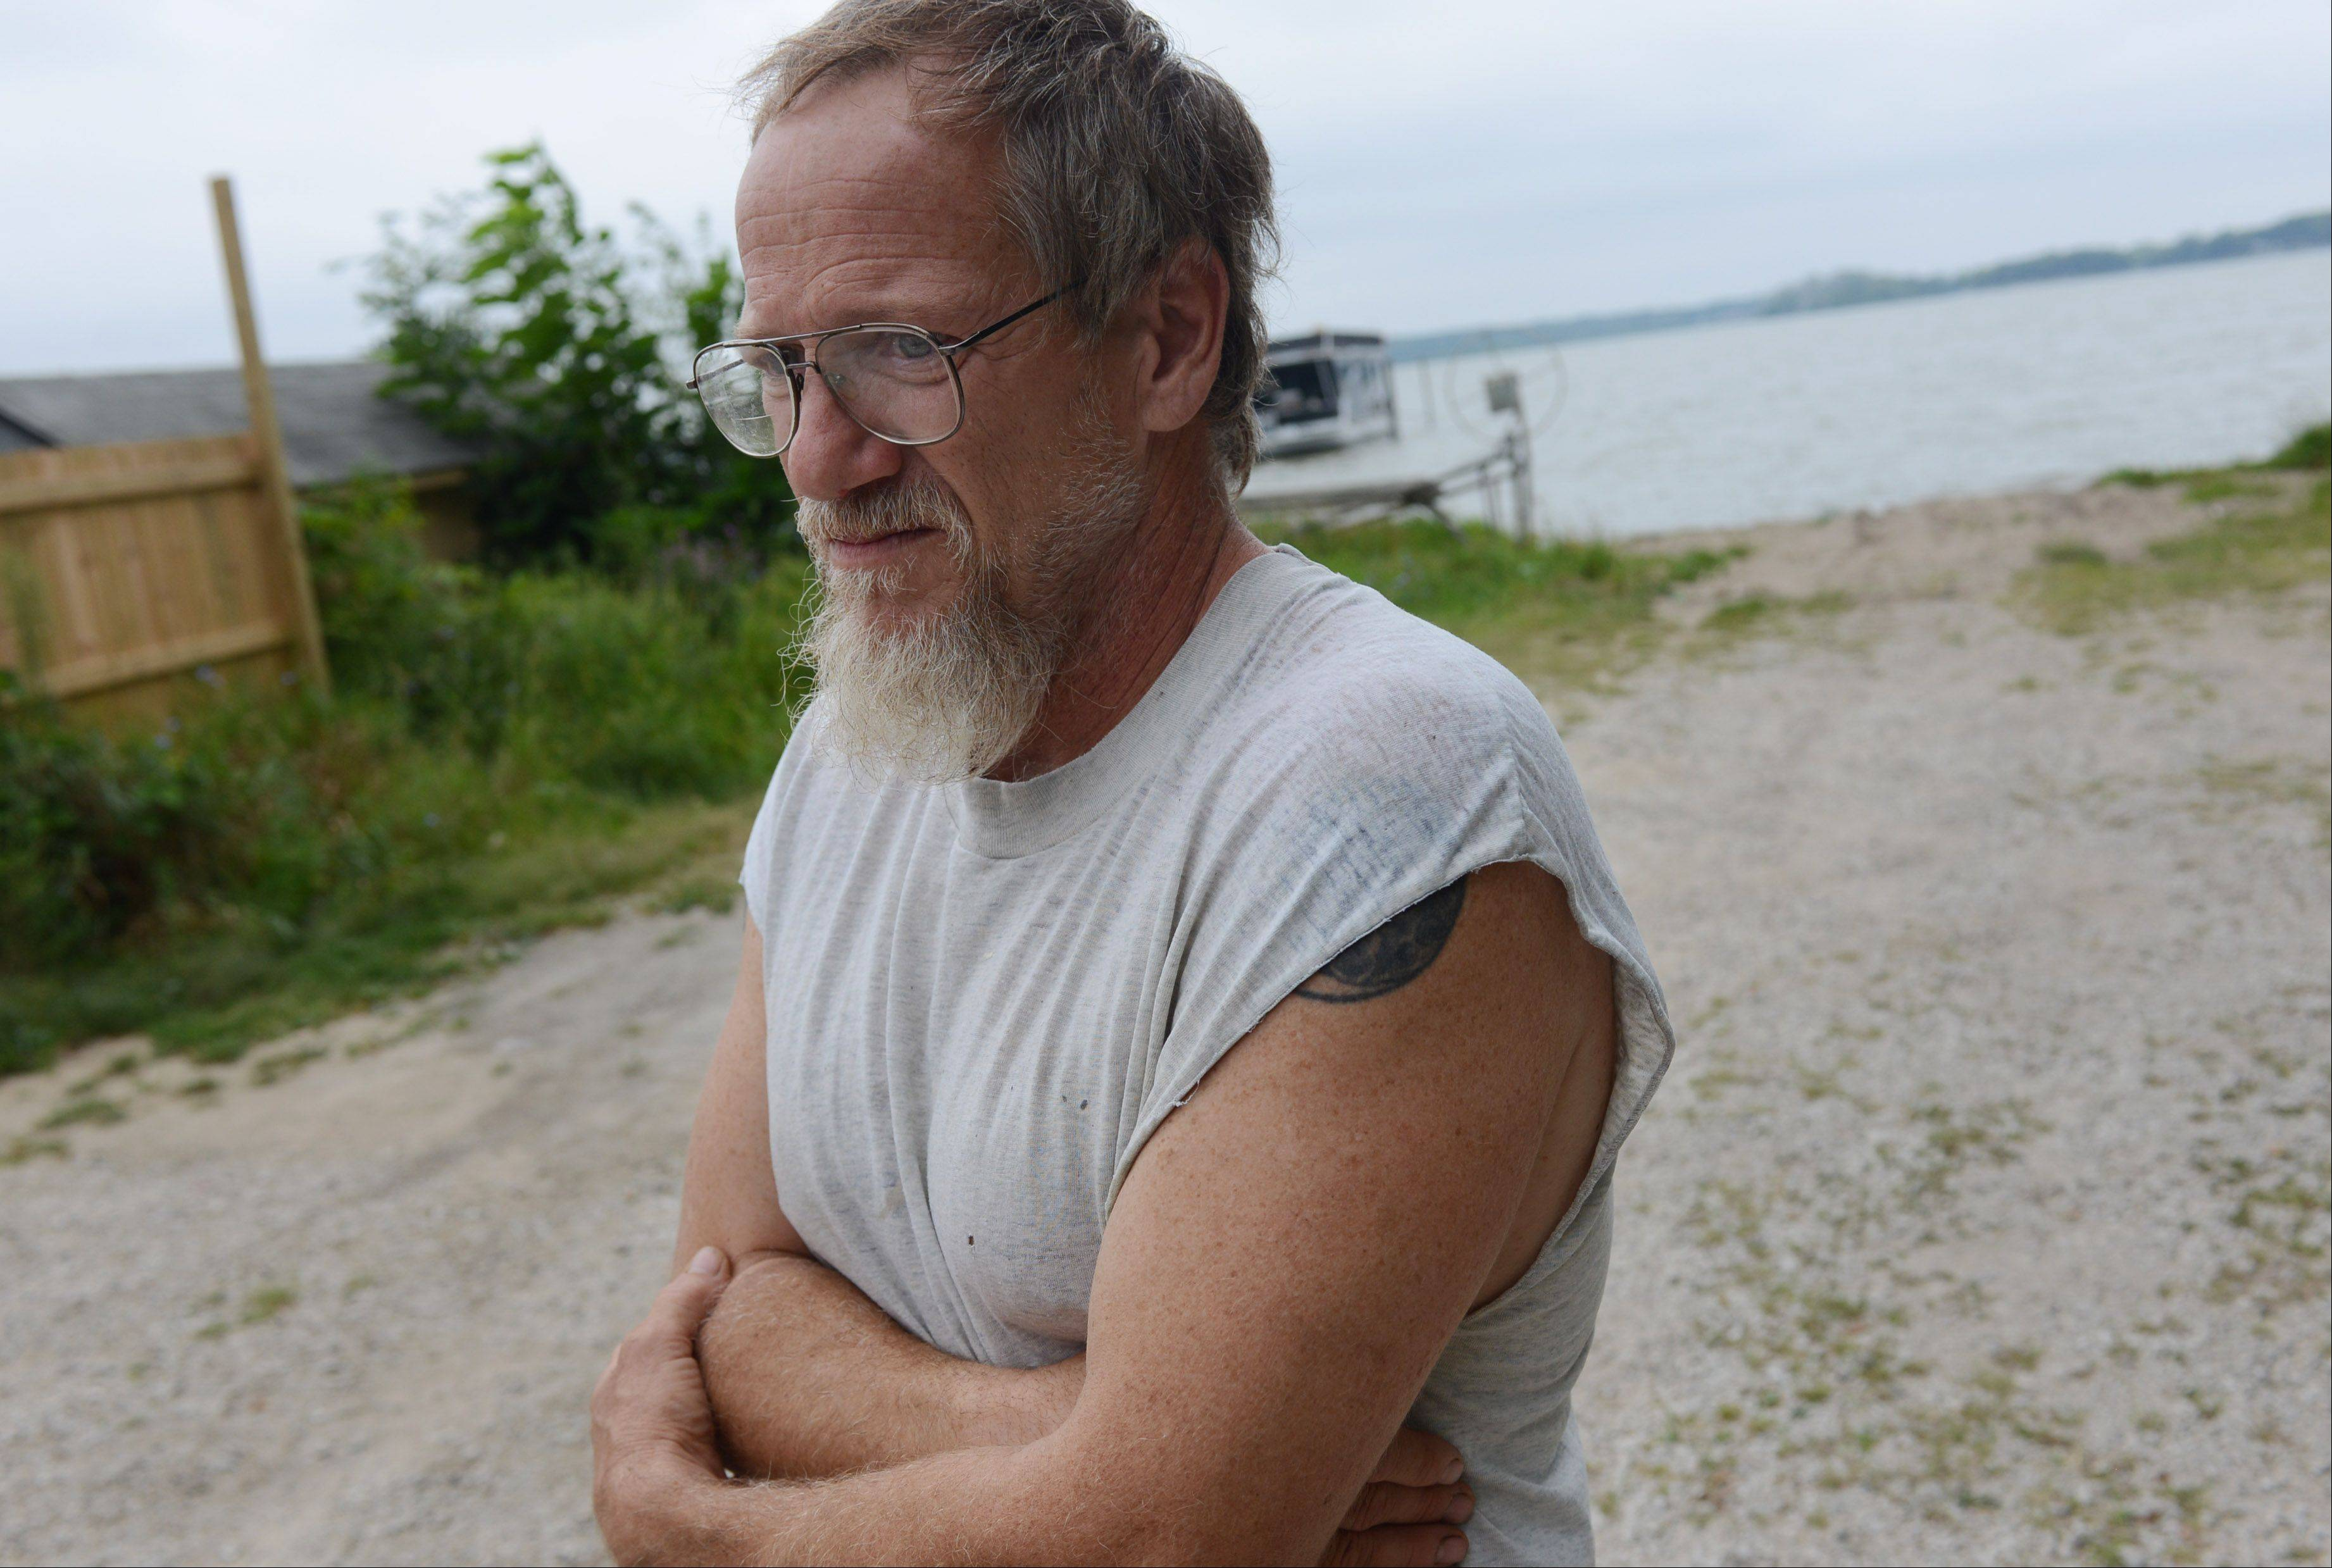 Ingleside resident Jim Zettlemoyer witnessed rescue crews attempting to revive a 9-year-old Round Lake girl who had drowned near a boat launch at Stormy Monday bar in Ingleside Tuesday evening.